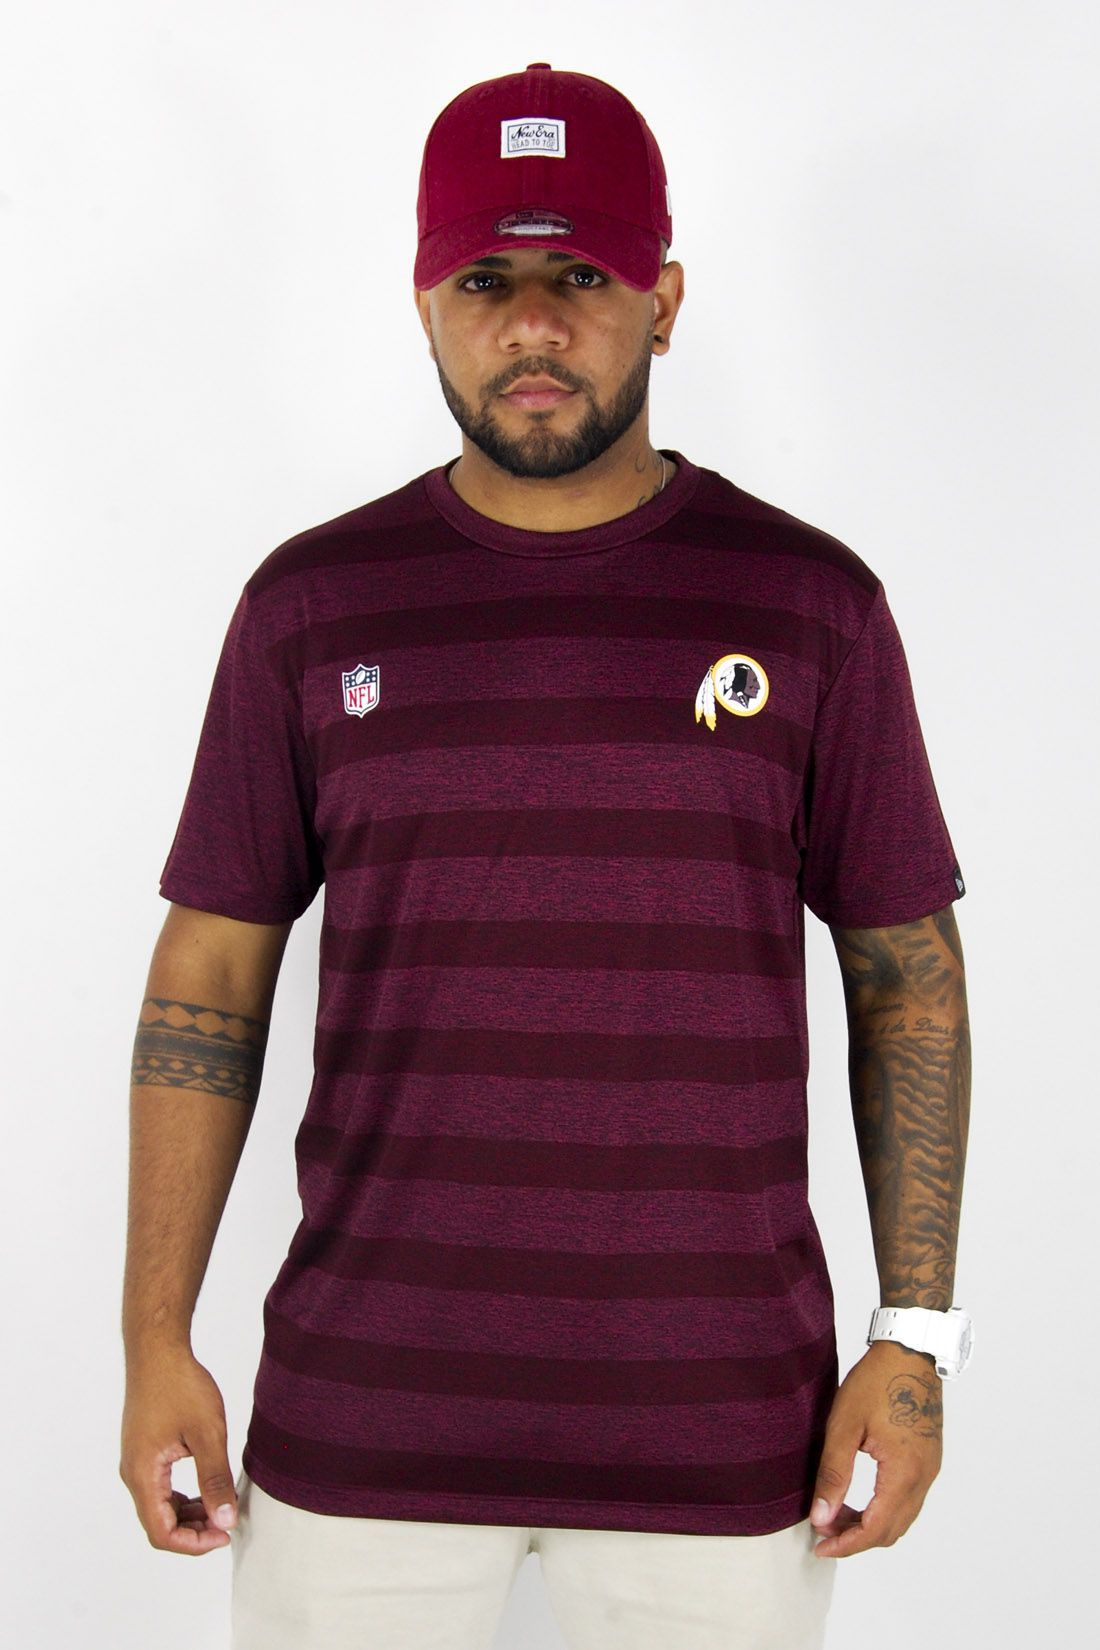 Camiseta NFL Whashington Redskins